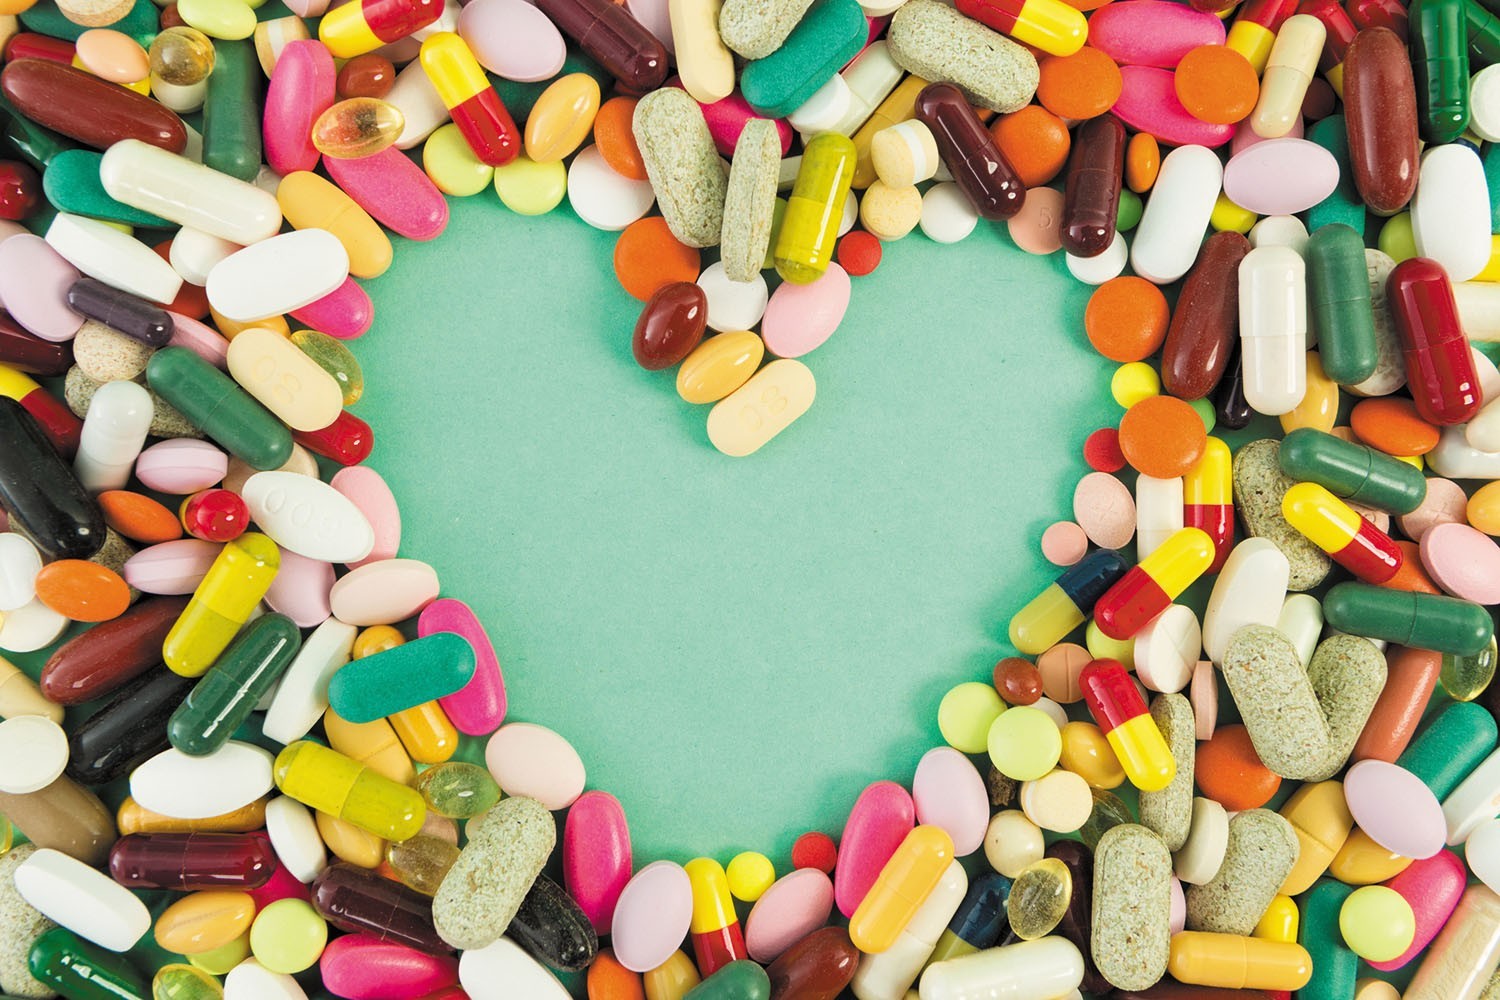 Boosting immunity with vitamins and minerals